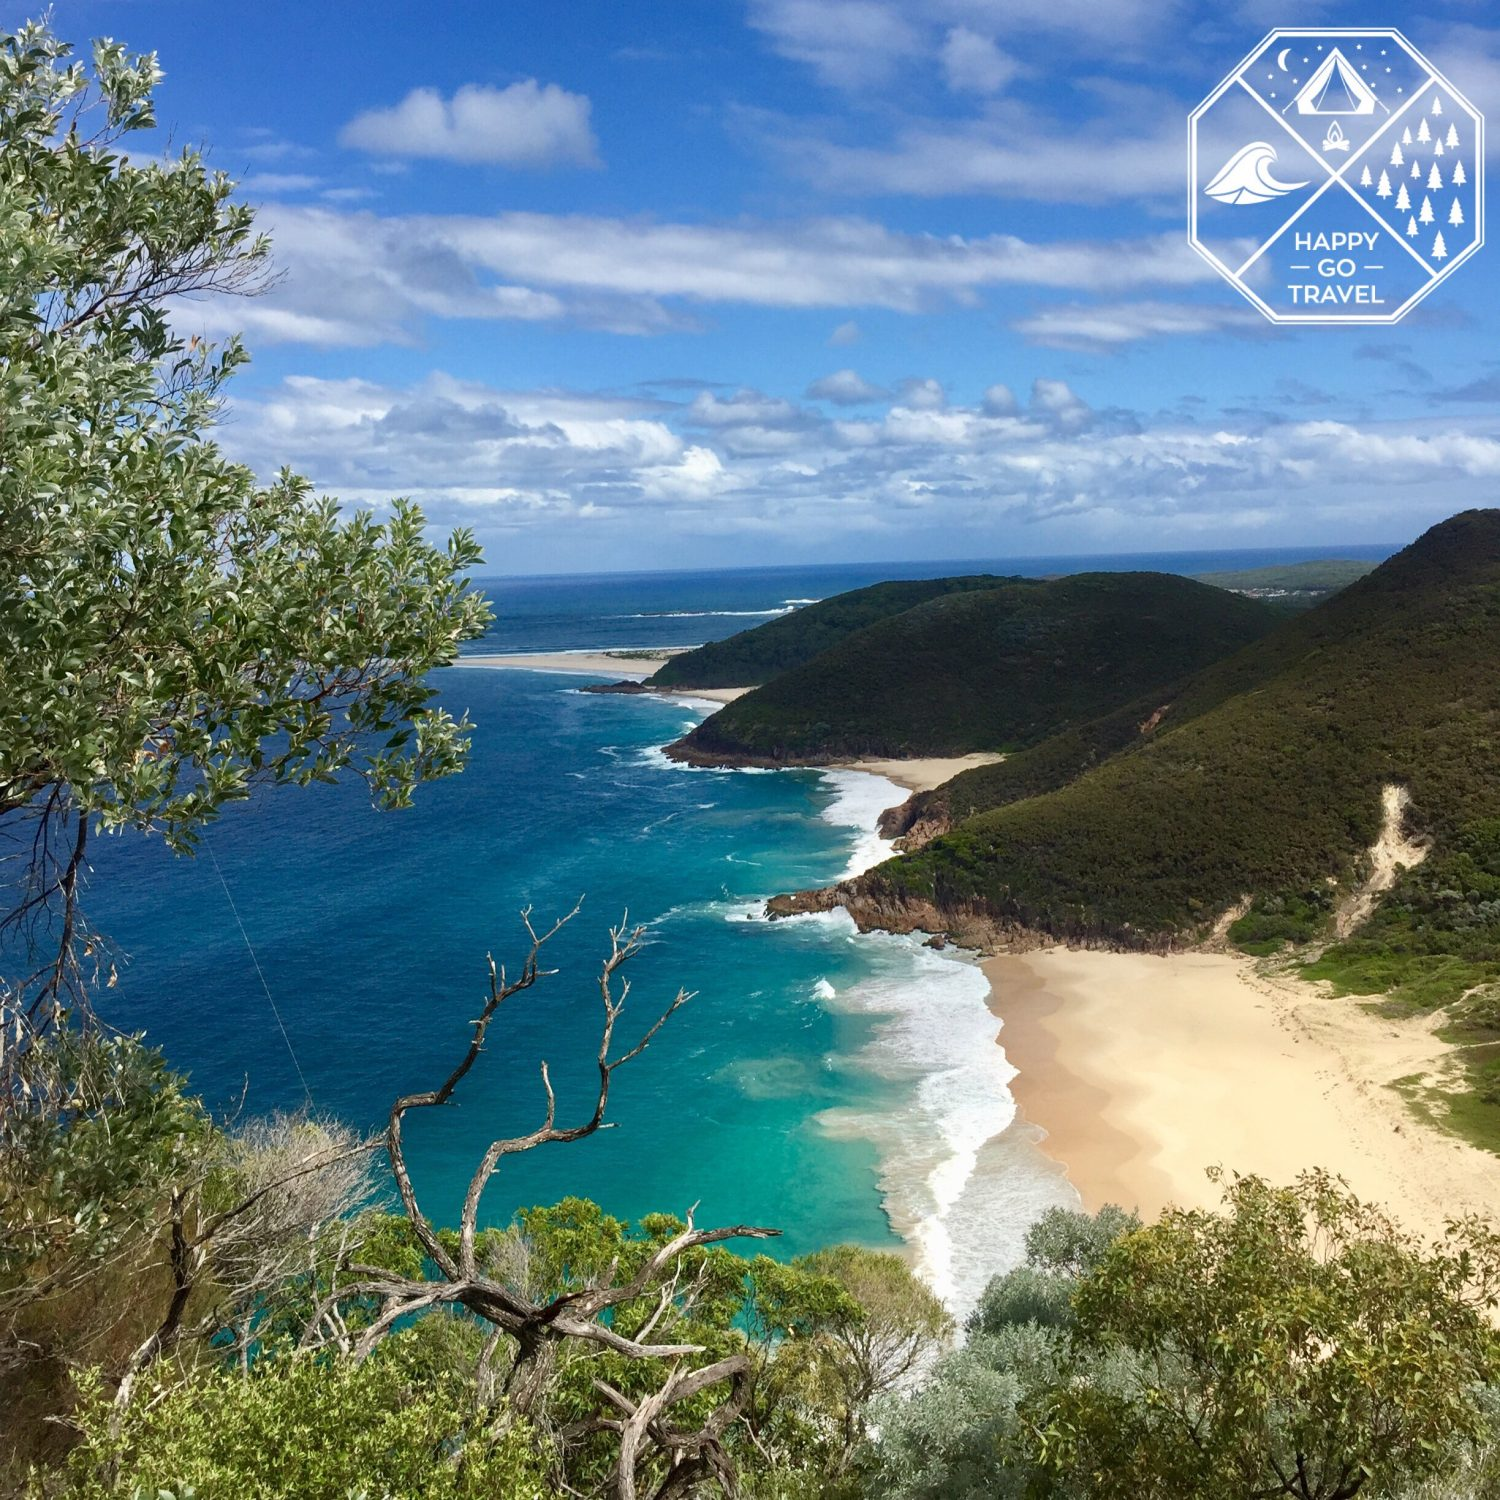 view from the Summit of Mount Tomaree, Port Stephens NSW | Mt Tomaree